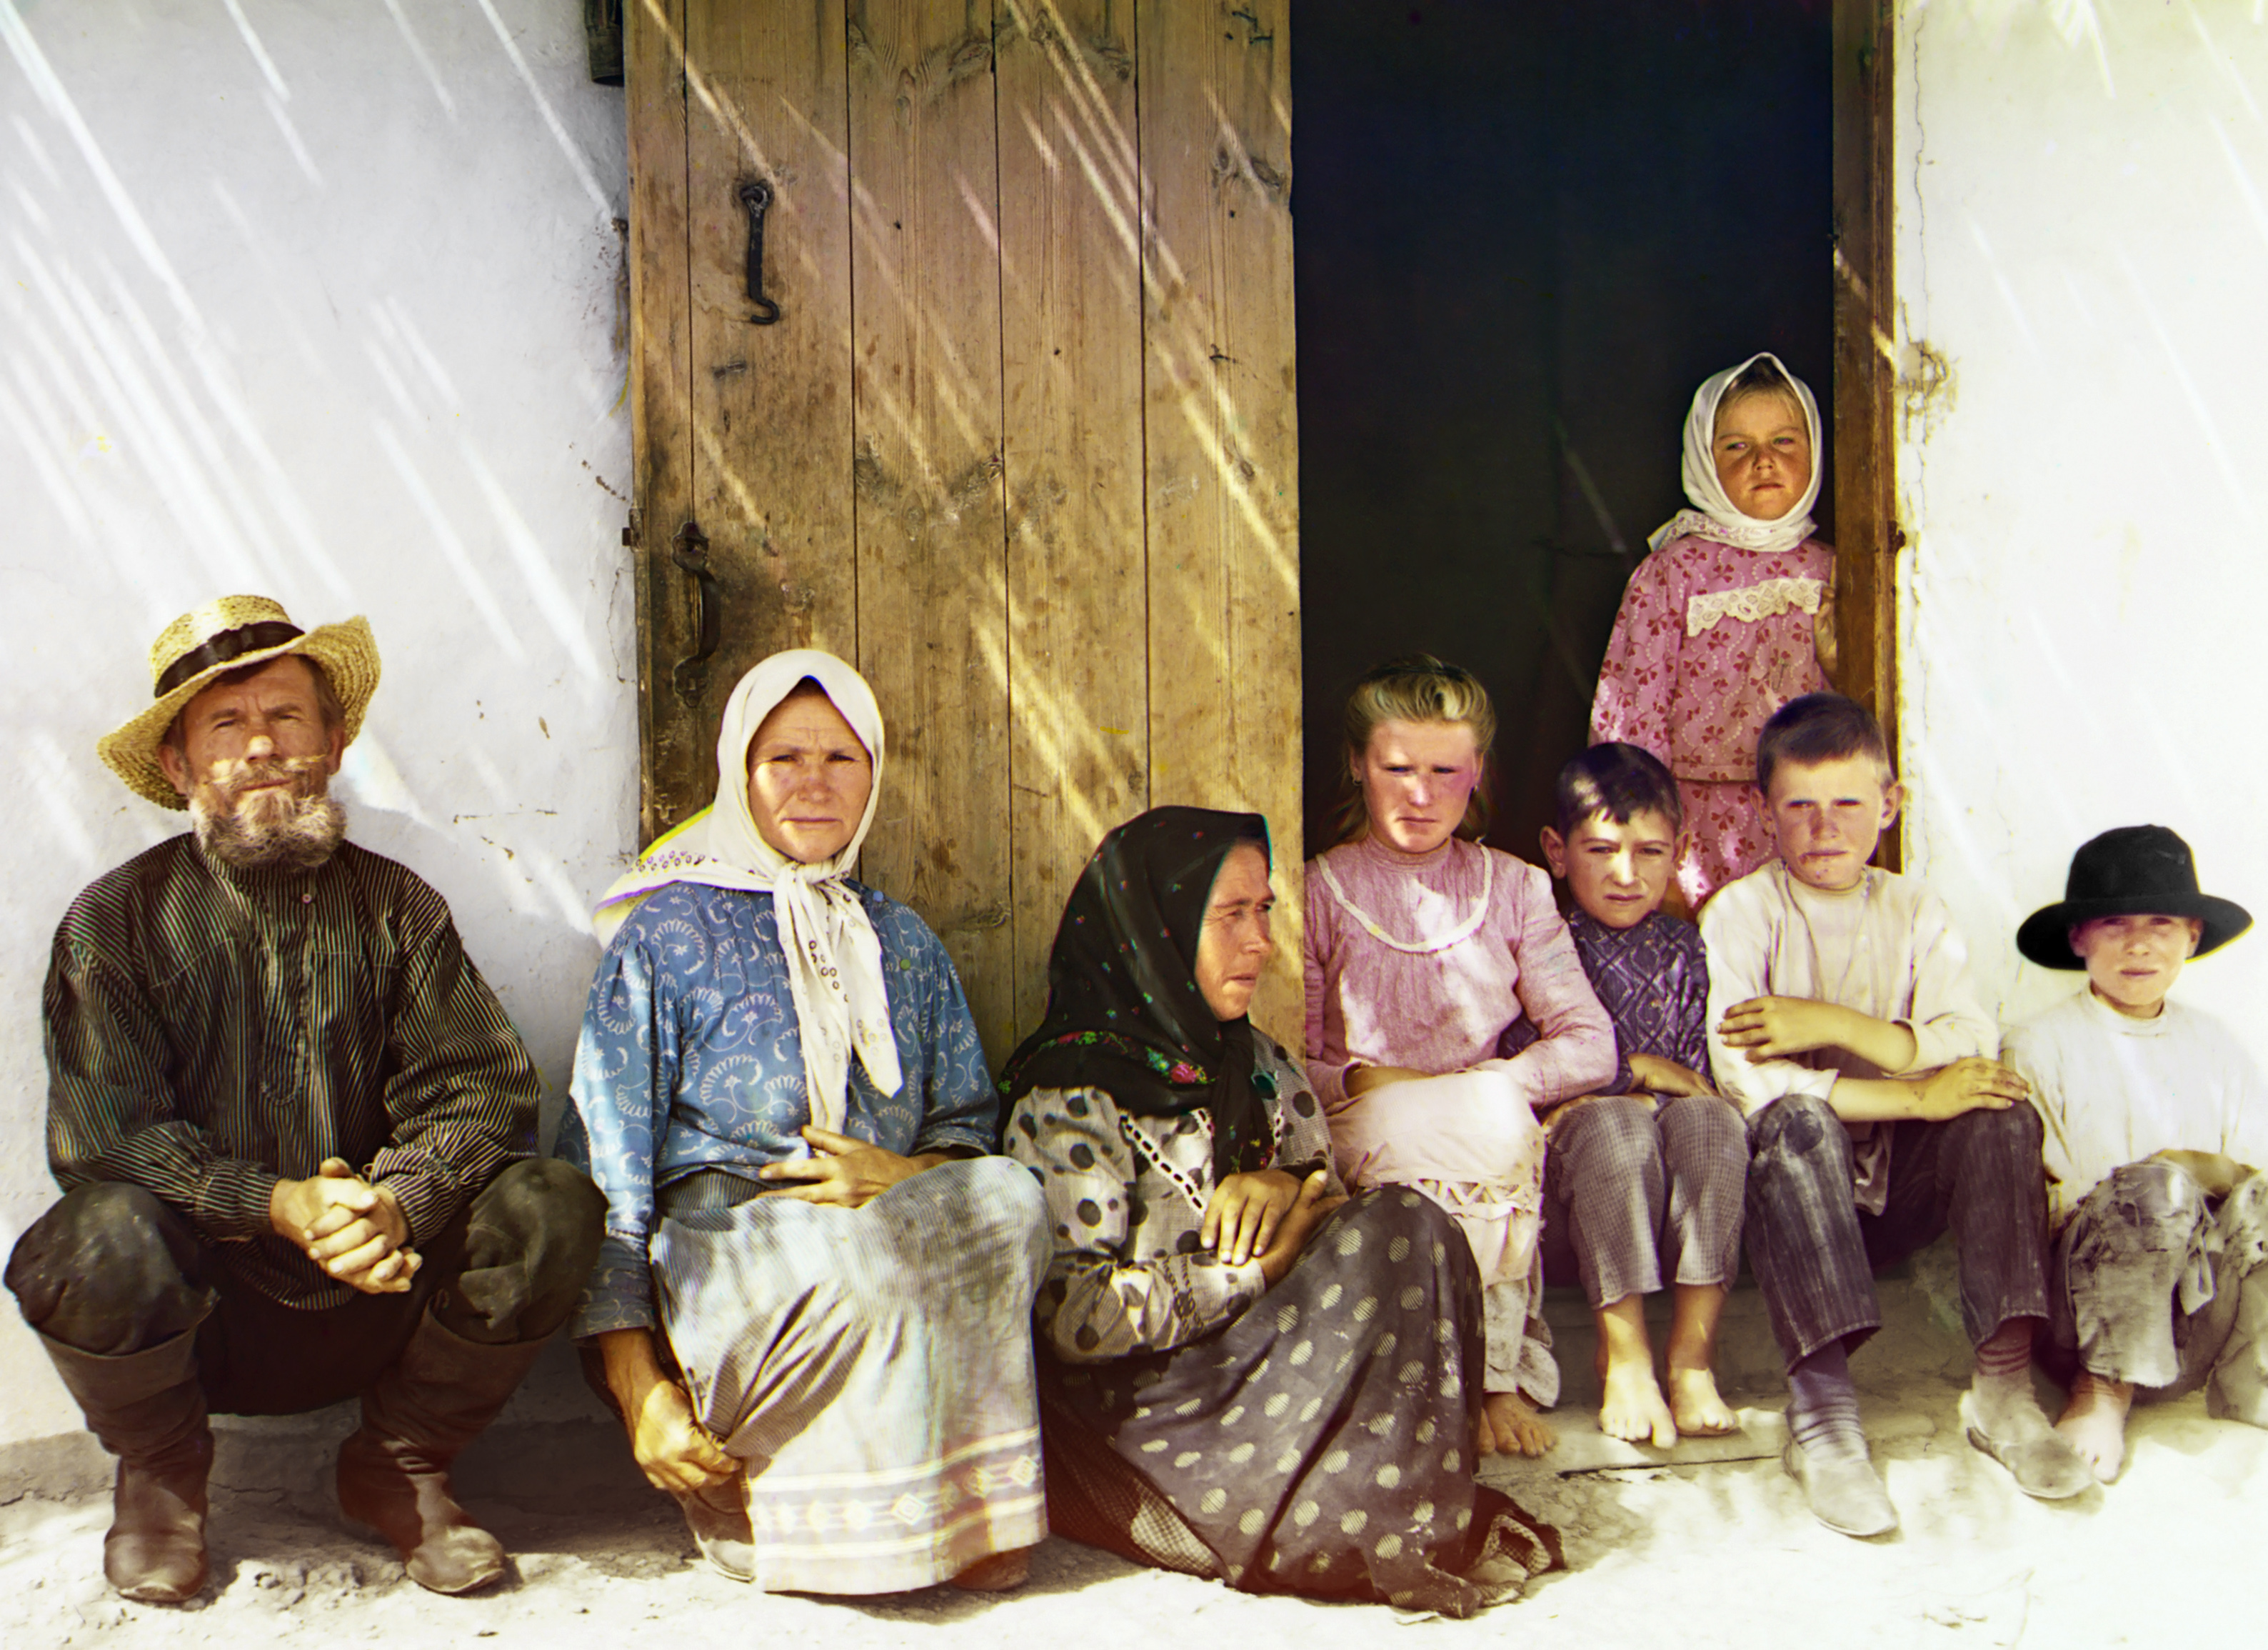 Russian settlers, possibly Molokans, in the Mugan steppe of Azerbaijan by Prokudin-Gorsky